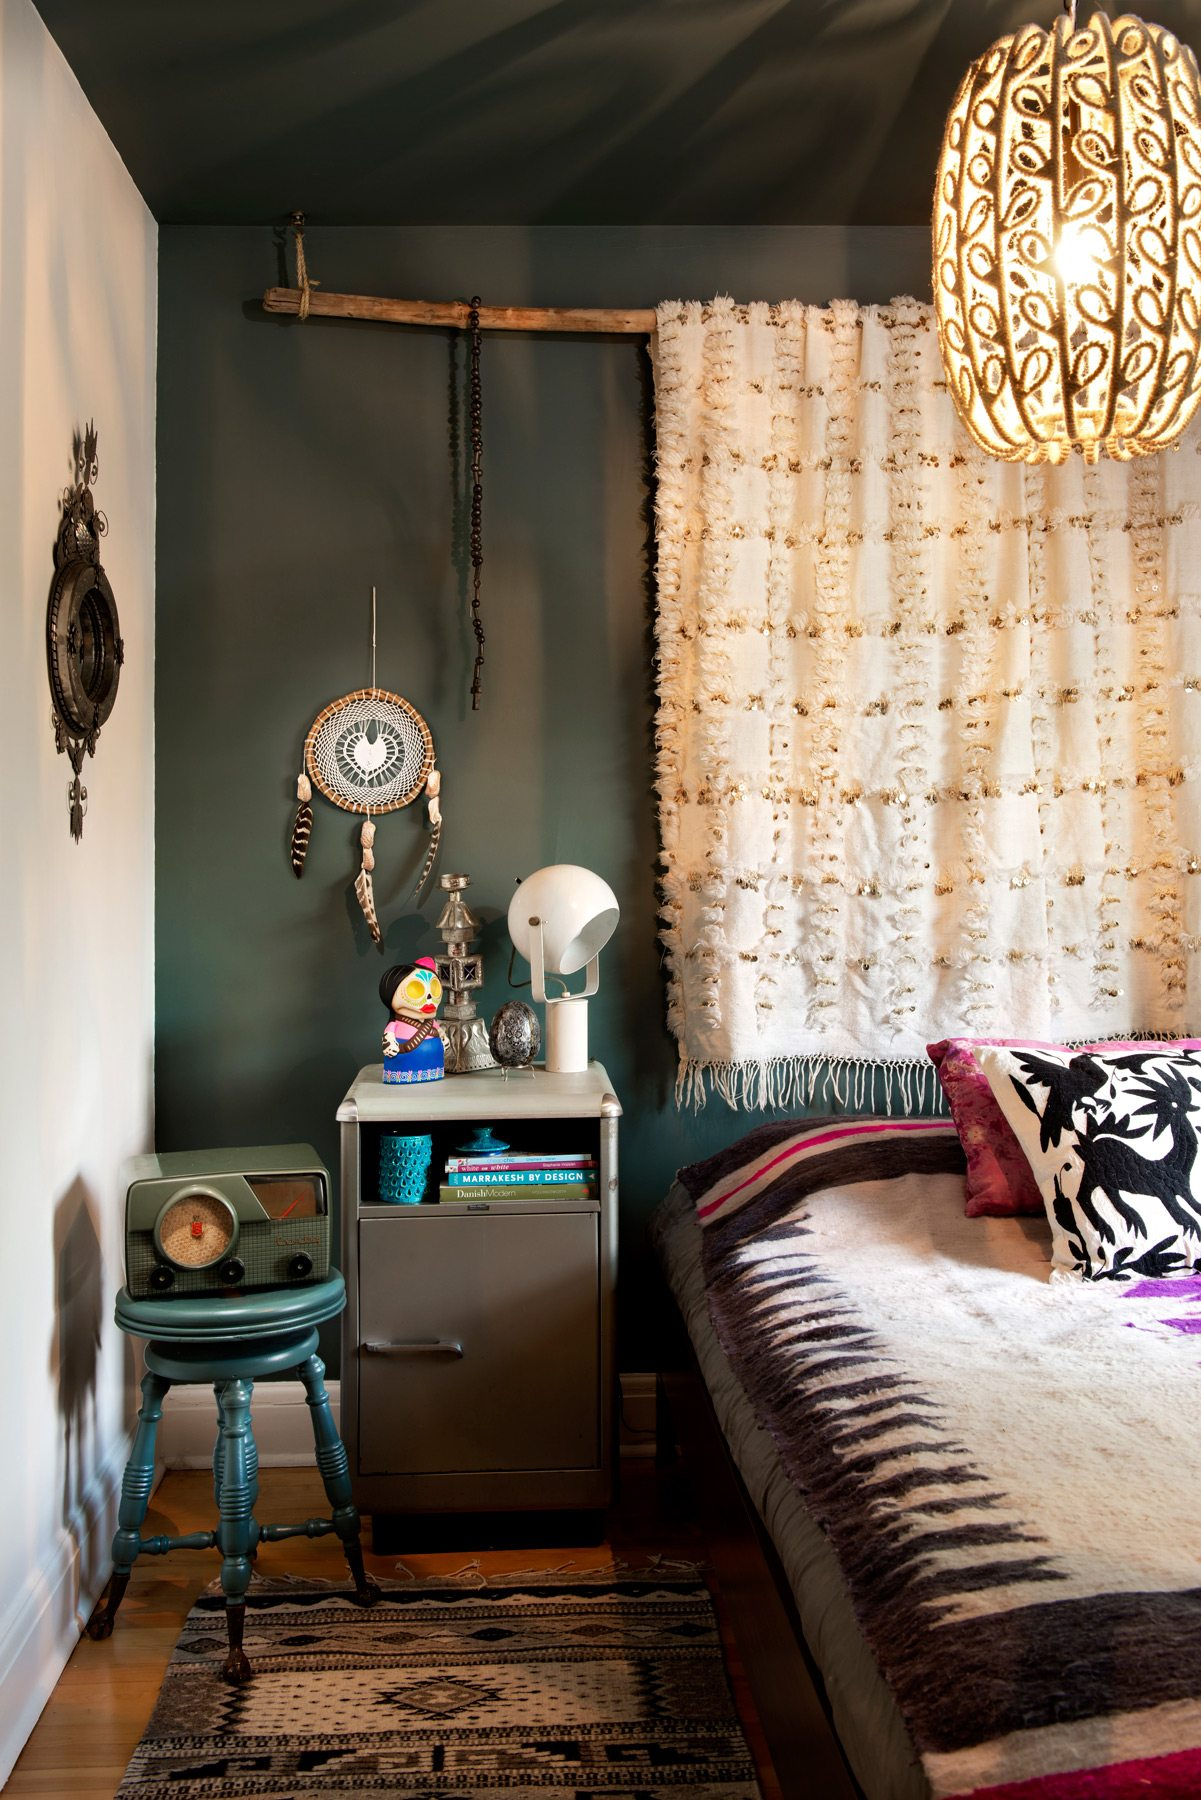 A wider view of the guest bedroom, a repository for all kinds of neat finds, from a dream catcher to a 1960s globe lamp. Photography: Marc Fowler / Metropolis Studio